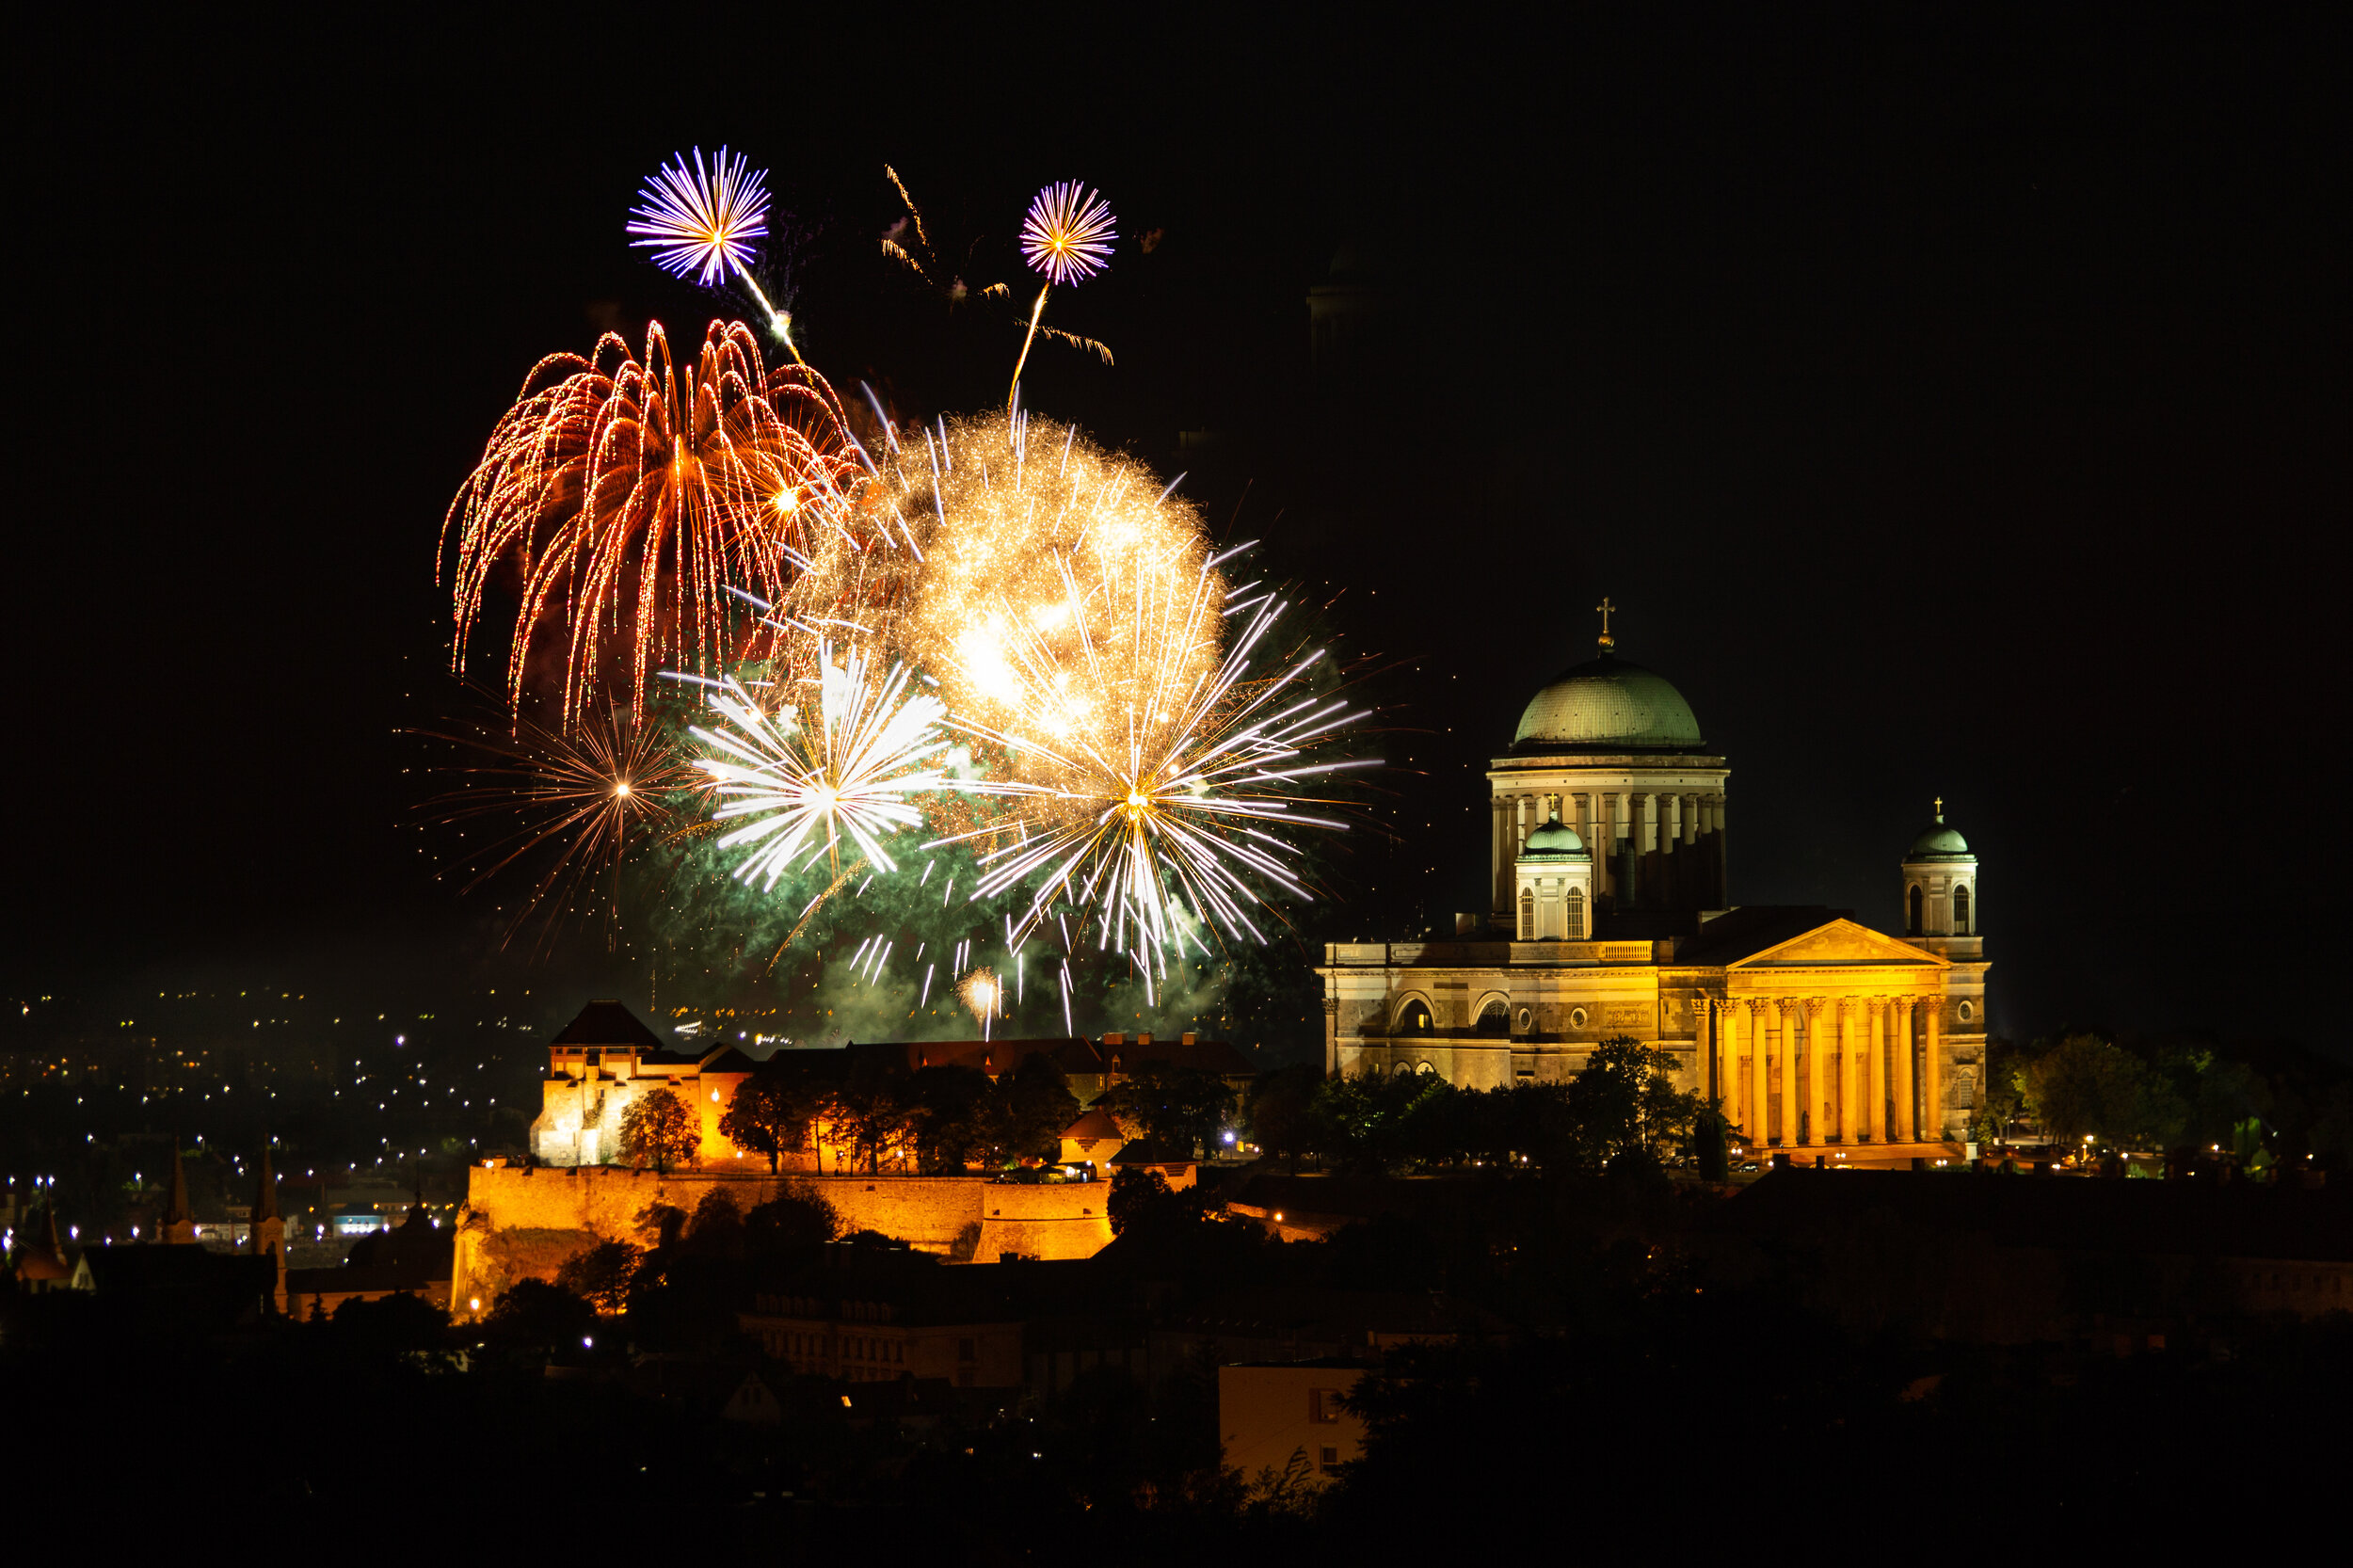 Esztergom, Hungary - once the capital of this country